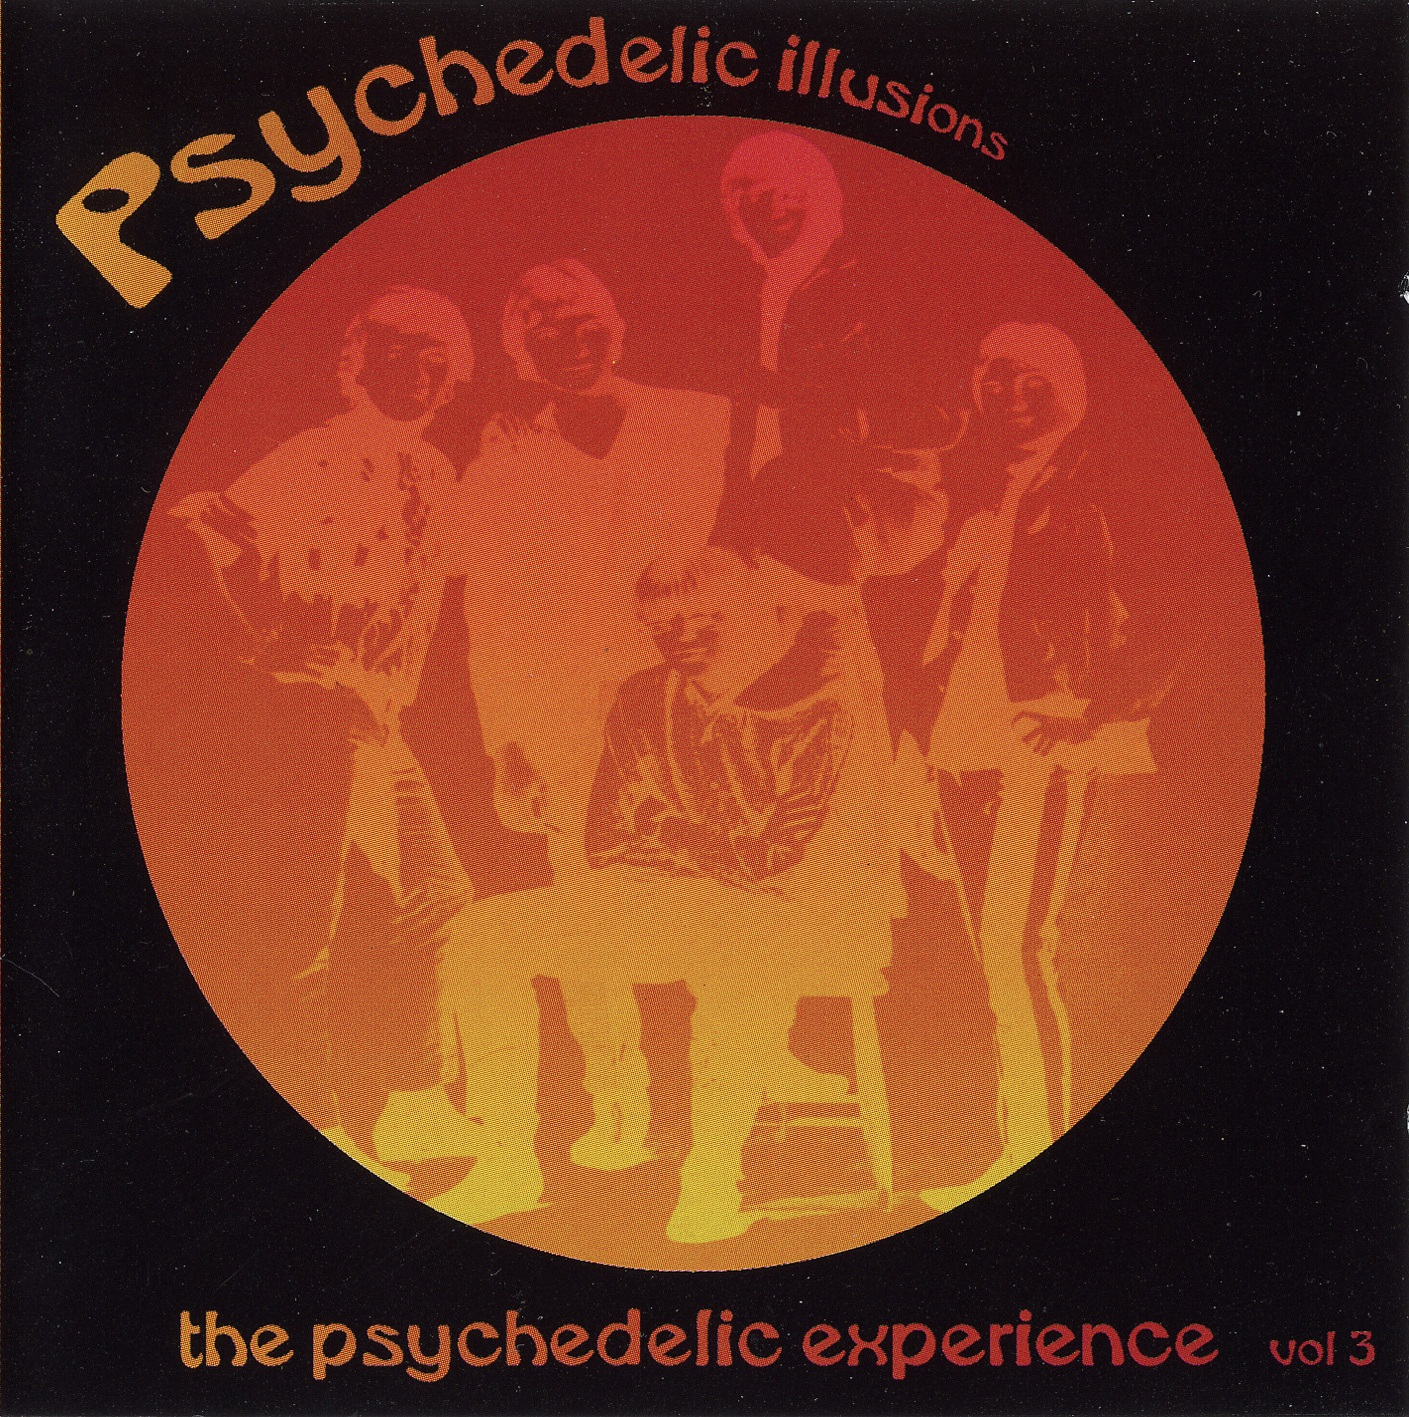 One Of Hours - Psychedelic Illusions